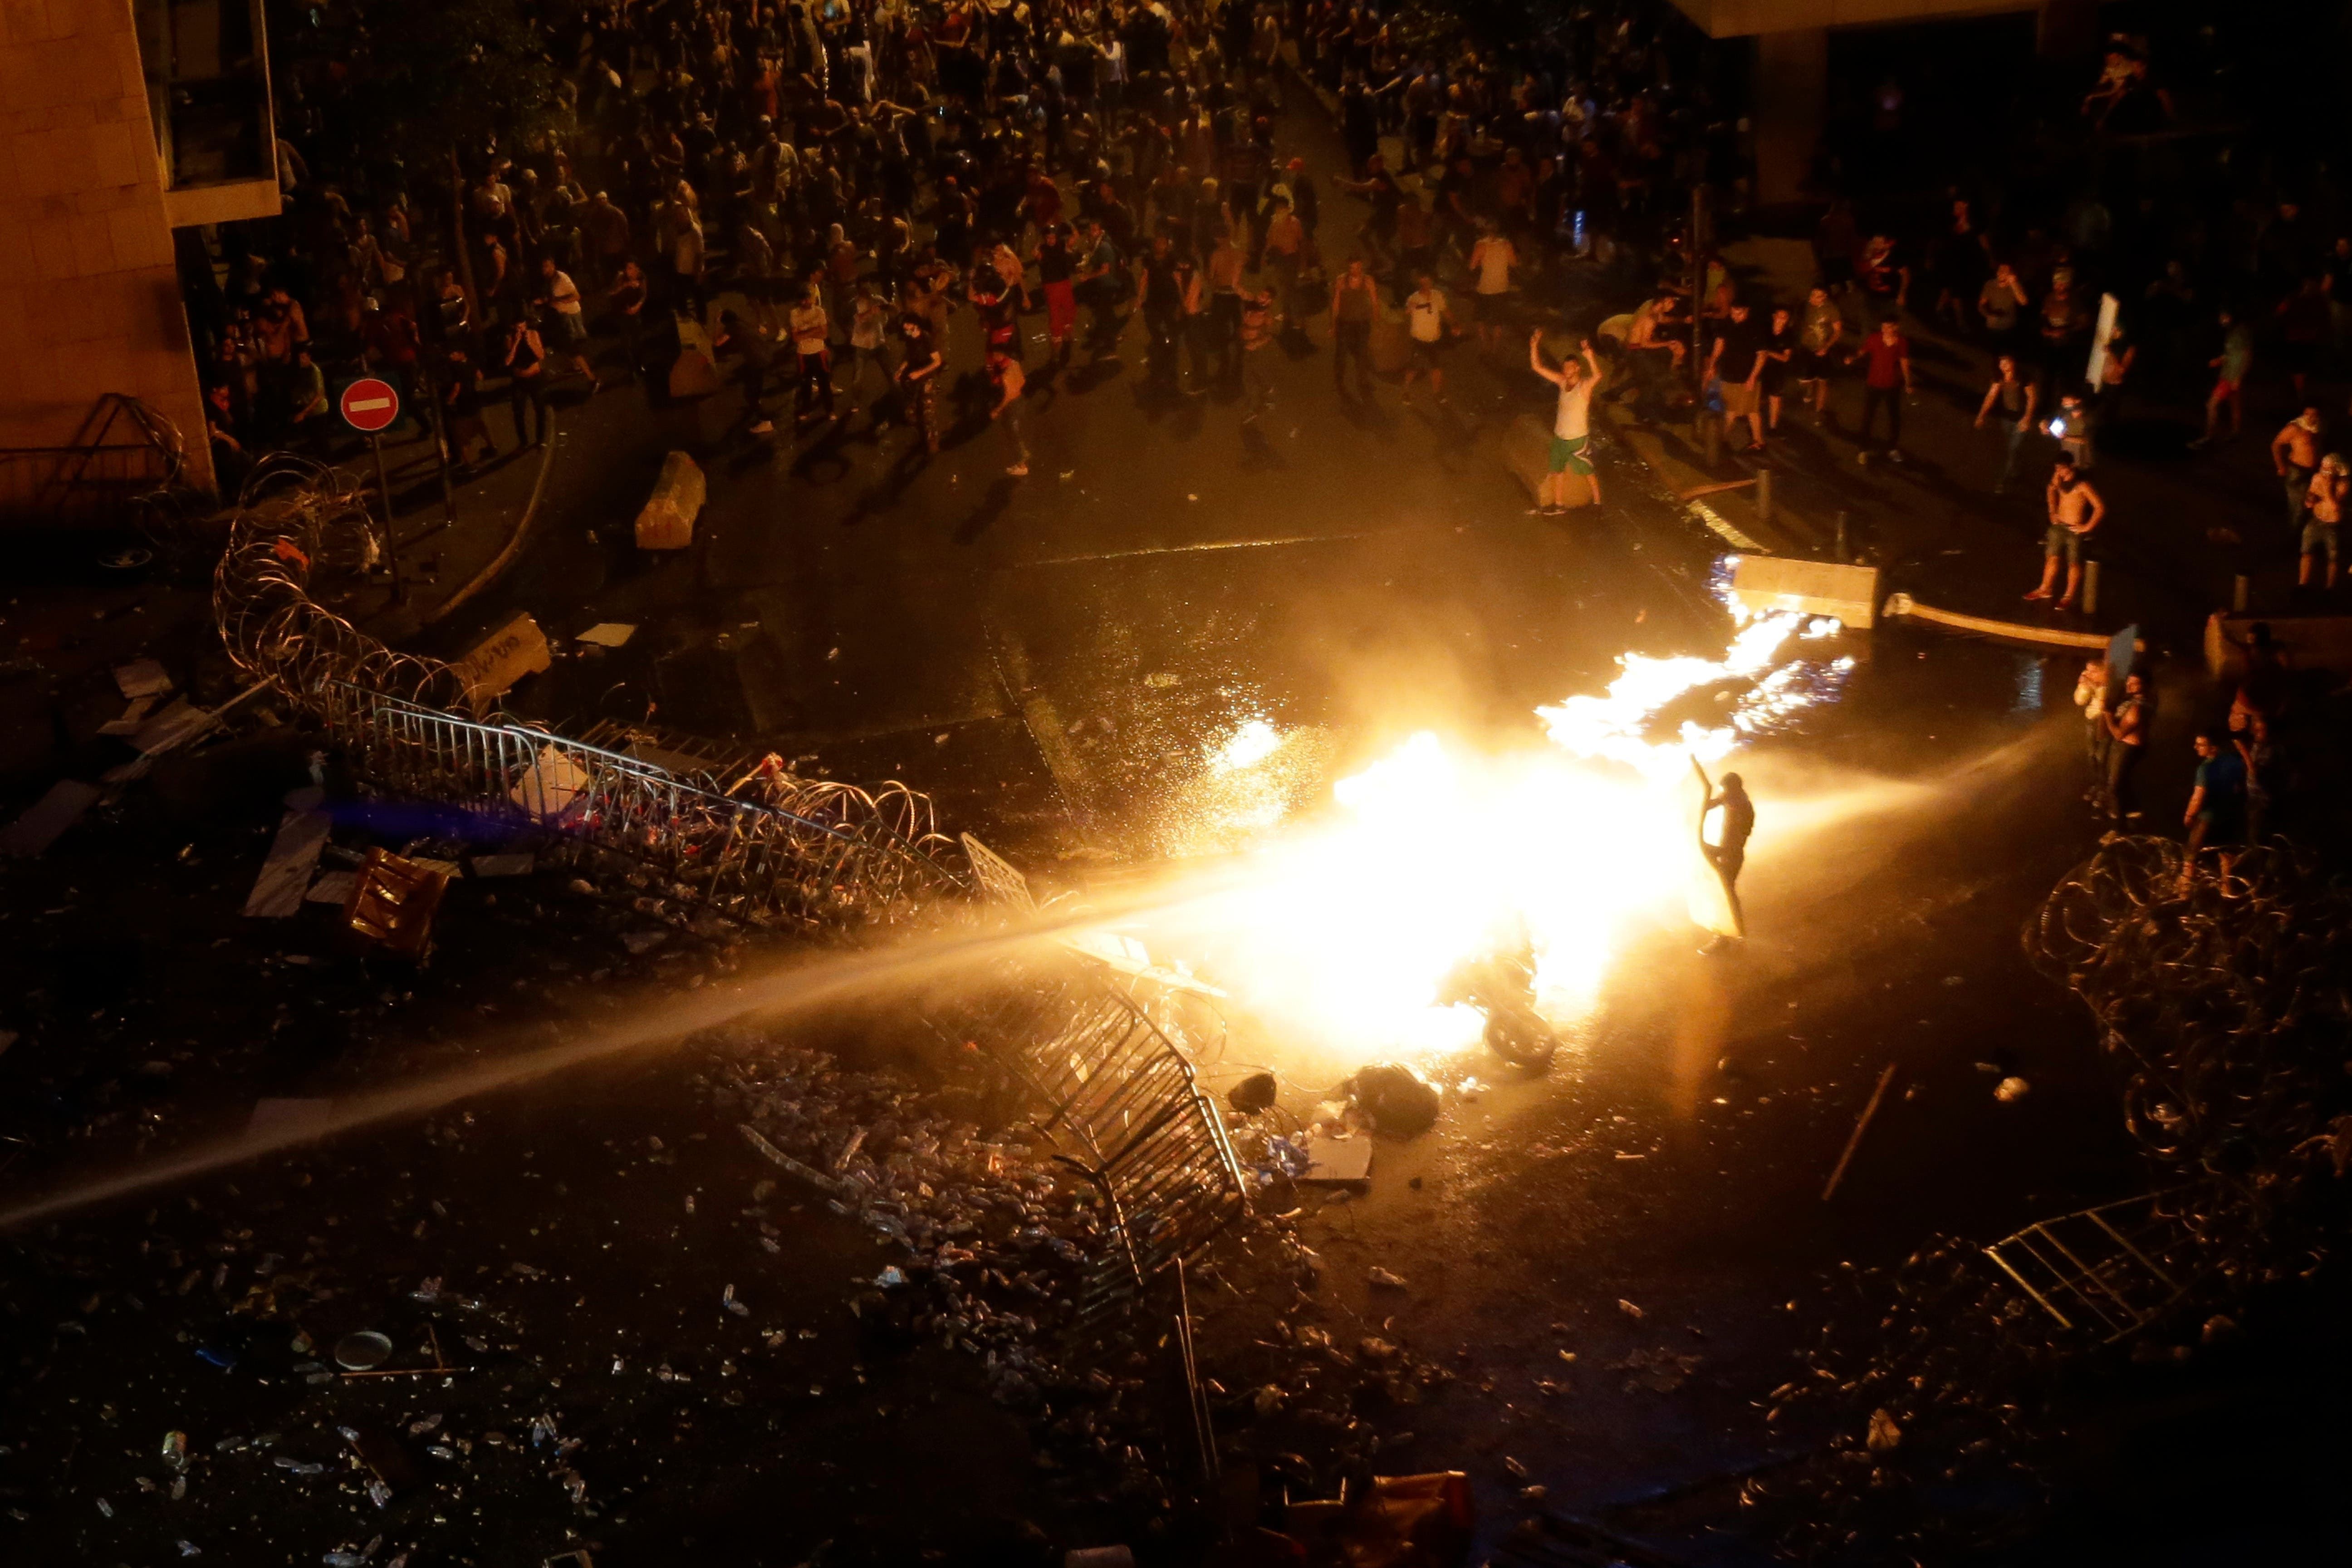 Lebanese protesters set a police motorcycle on fire as they are sprayed by riot police using water cannons during a protest against the ongoing trash crisis, in downtown Beirut, Lebanon, Sunday, Aug. 23, 2015.  (AP)